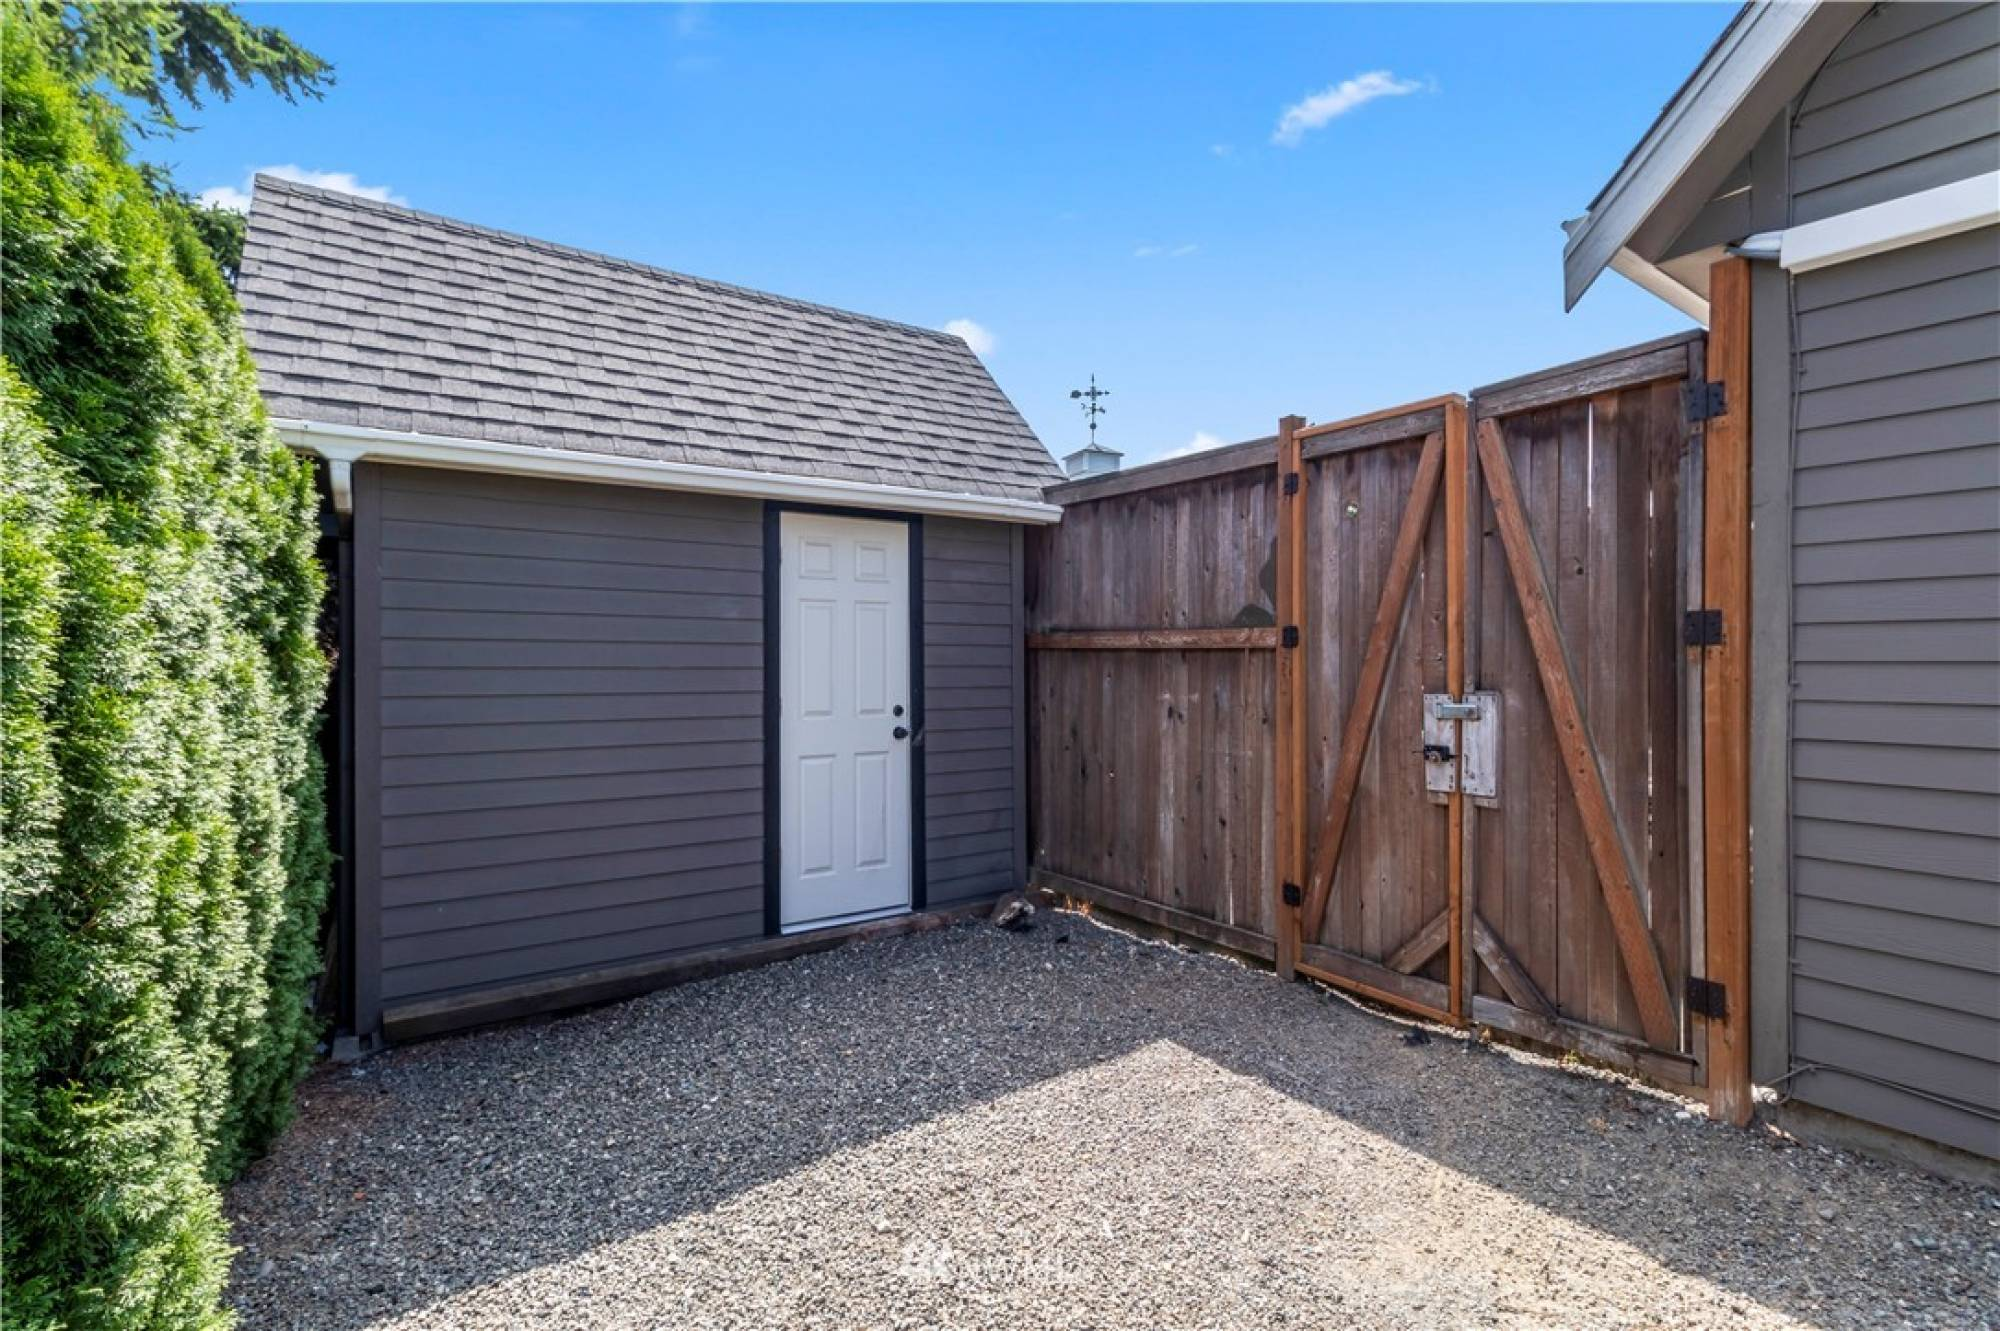 421 AVE J, Snohomish, Washington 98290, 3 Bedrooms Bedrooms, ,2 BathroomsBathrooms,Residential,For Sale,AVE J,1835435